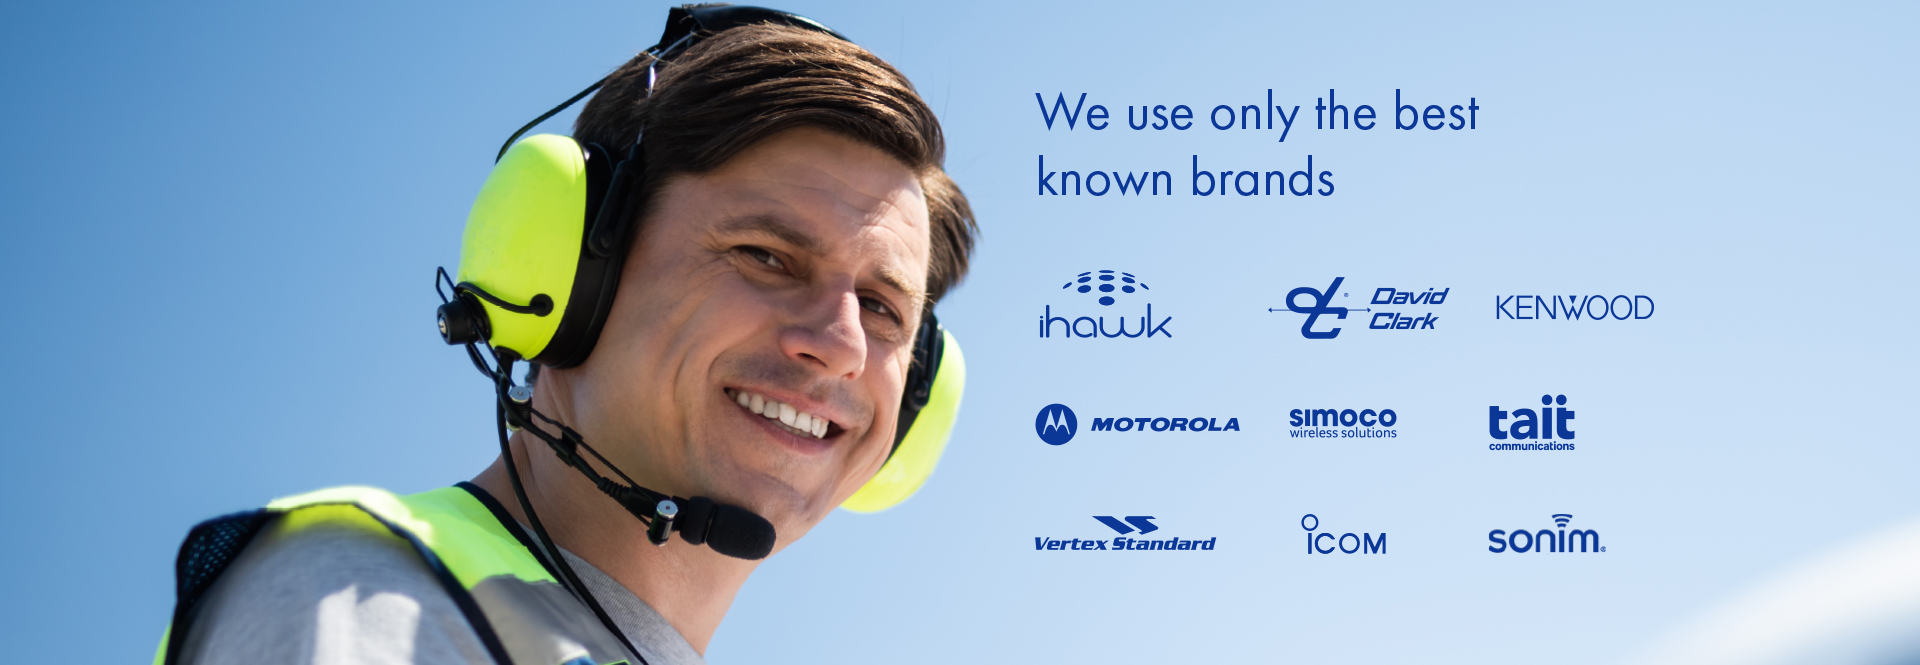 aerotalk aviation communications brands